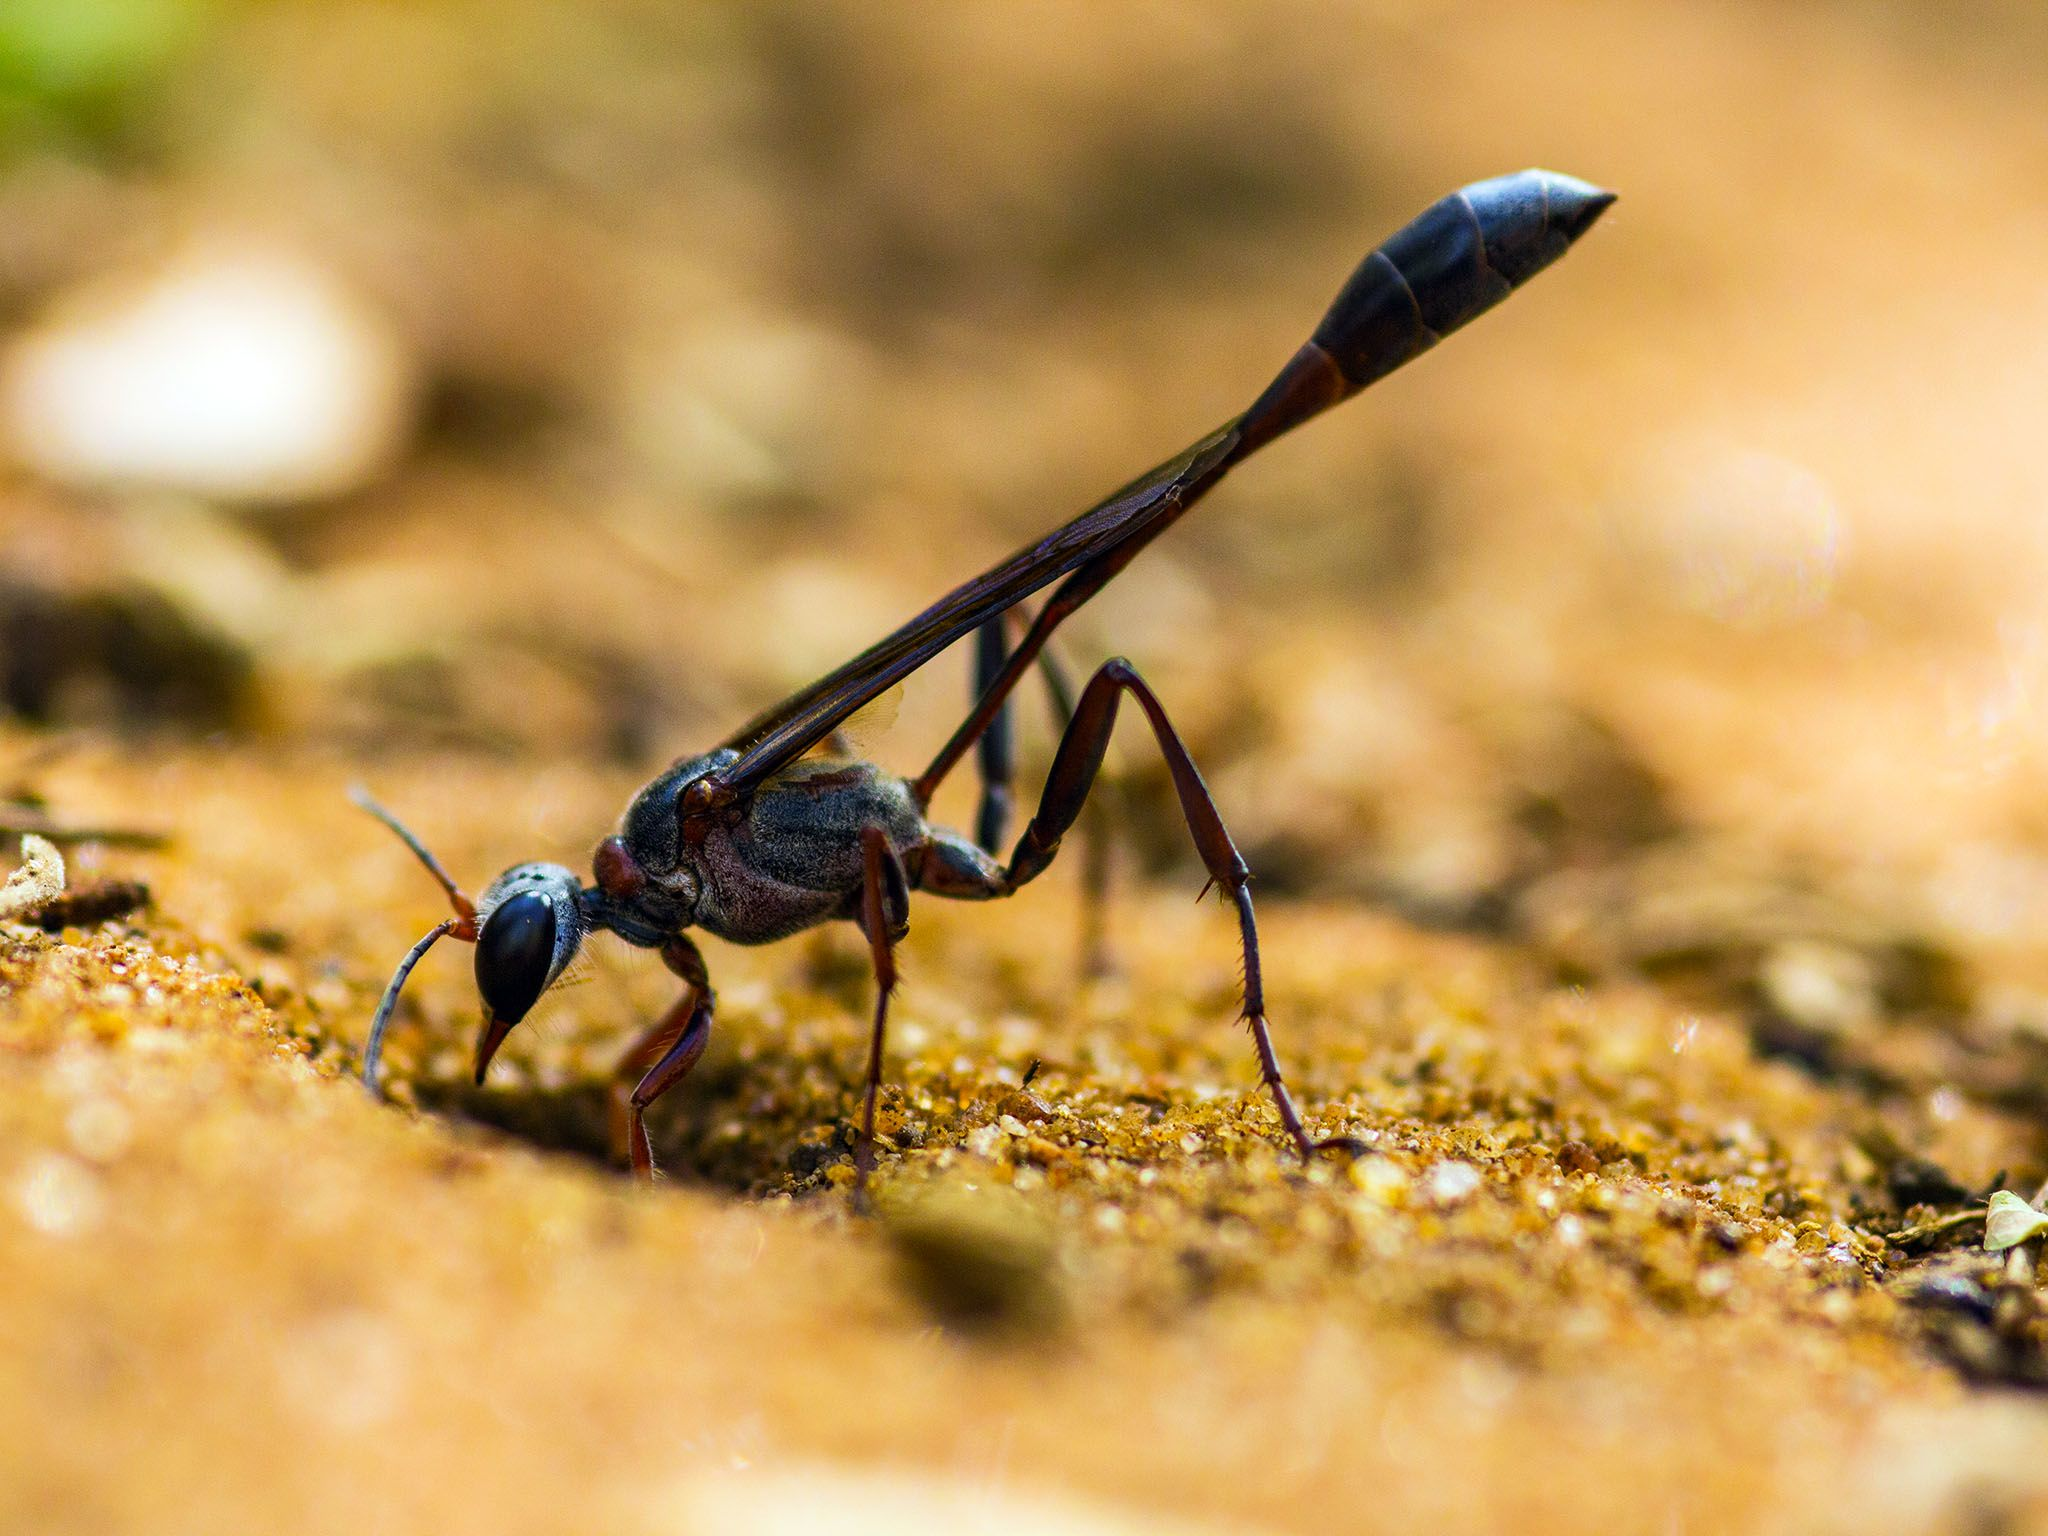 Durban, South Africa: A thread-waisted parasitic wasp standing on soil with head positioned... [Photo of the day - می 2016]